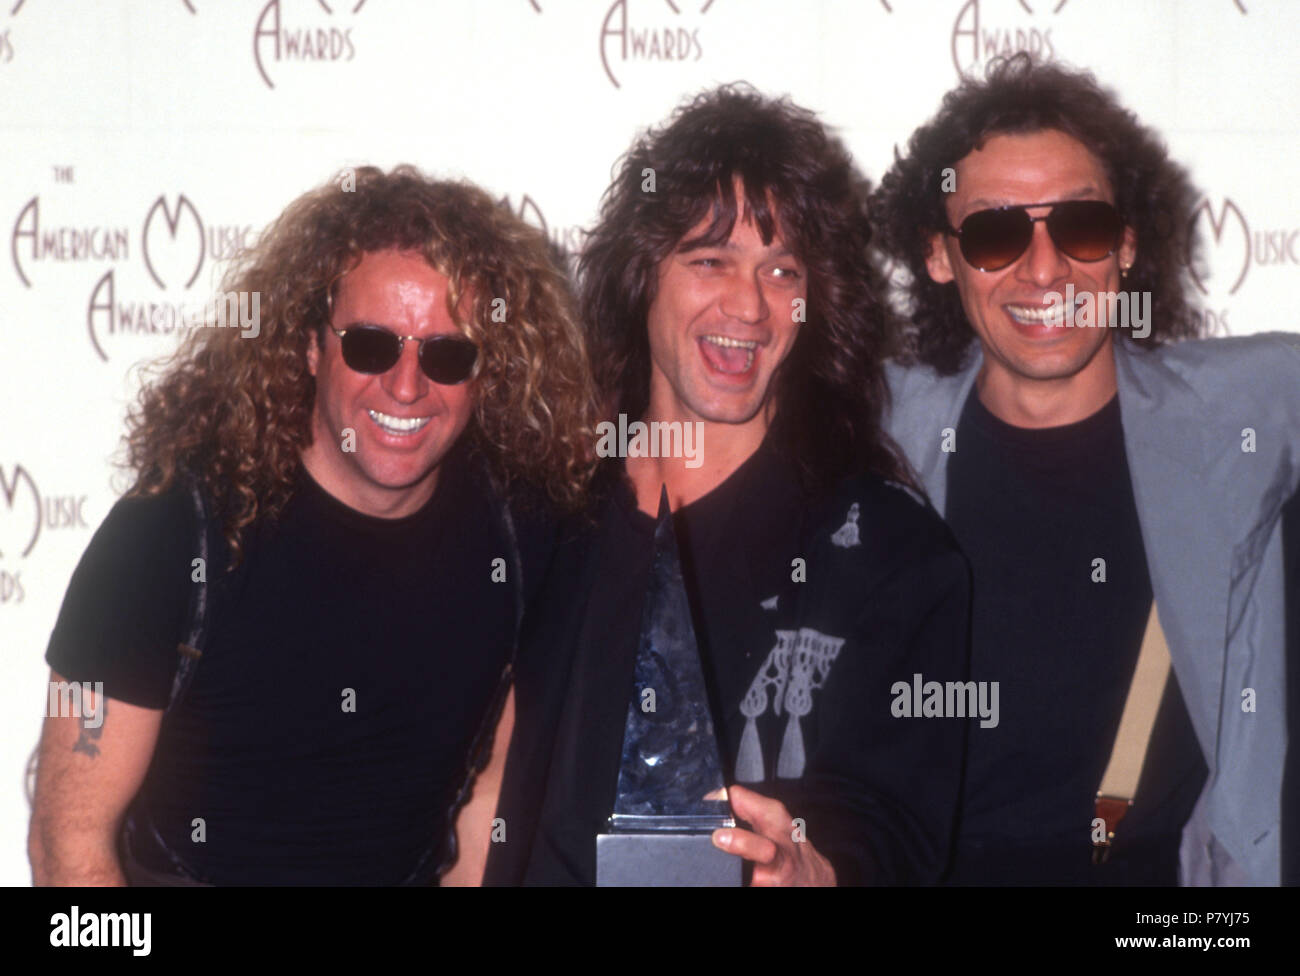 Eddie Van Halen And Alex Van Halen High Resolution Stock Photography And Images Alamy